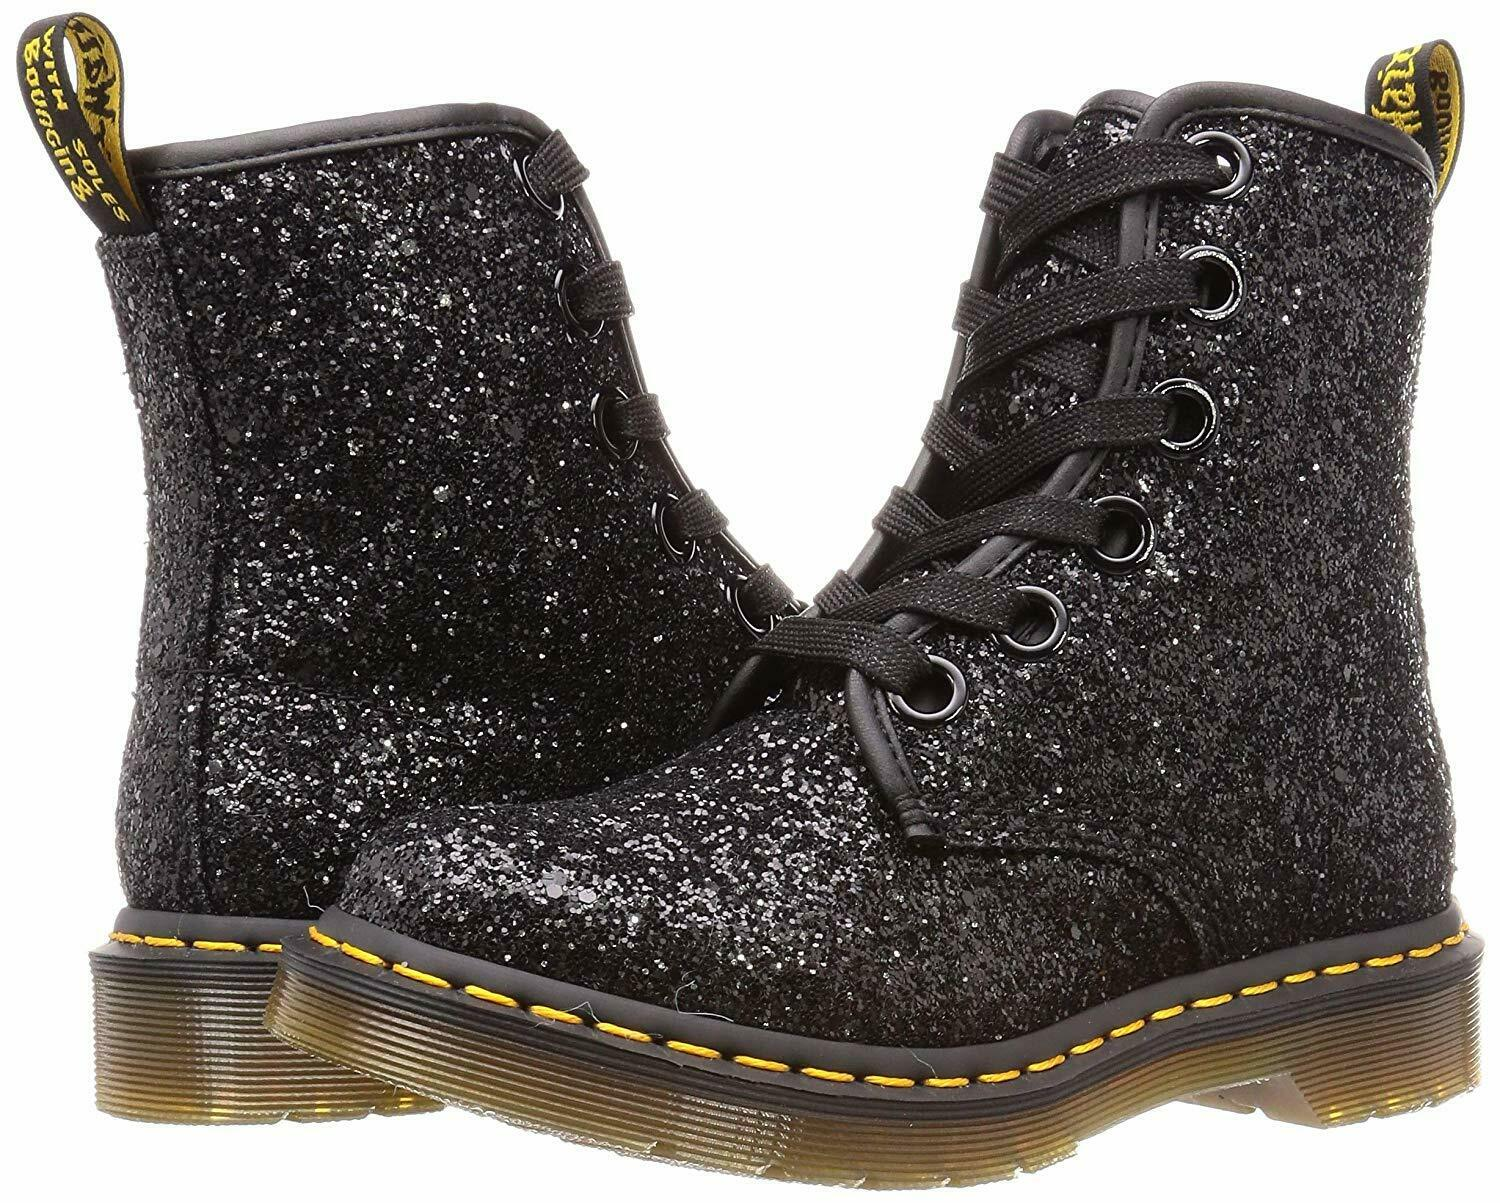 Women's Shoes Dr. Martens 1460 FARRAH 8 Eye Boots 25137001 BLACK CHUNKY GLITTER